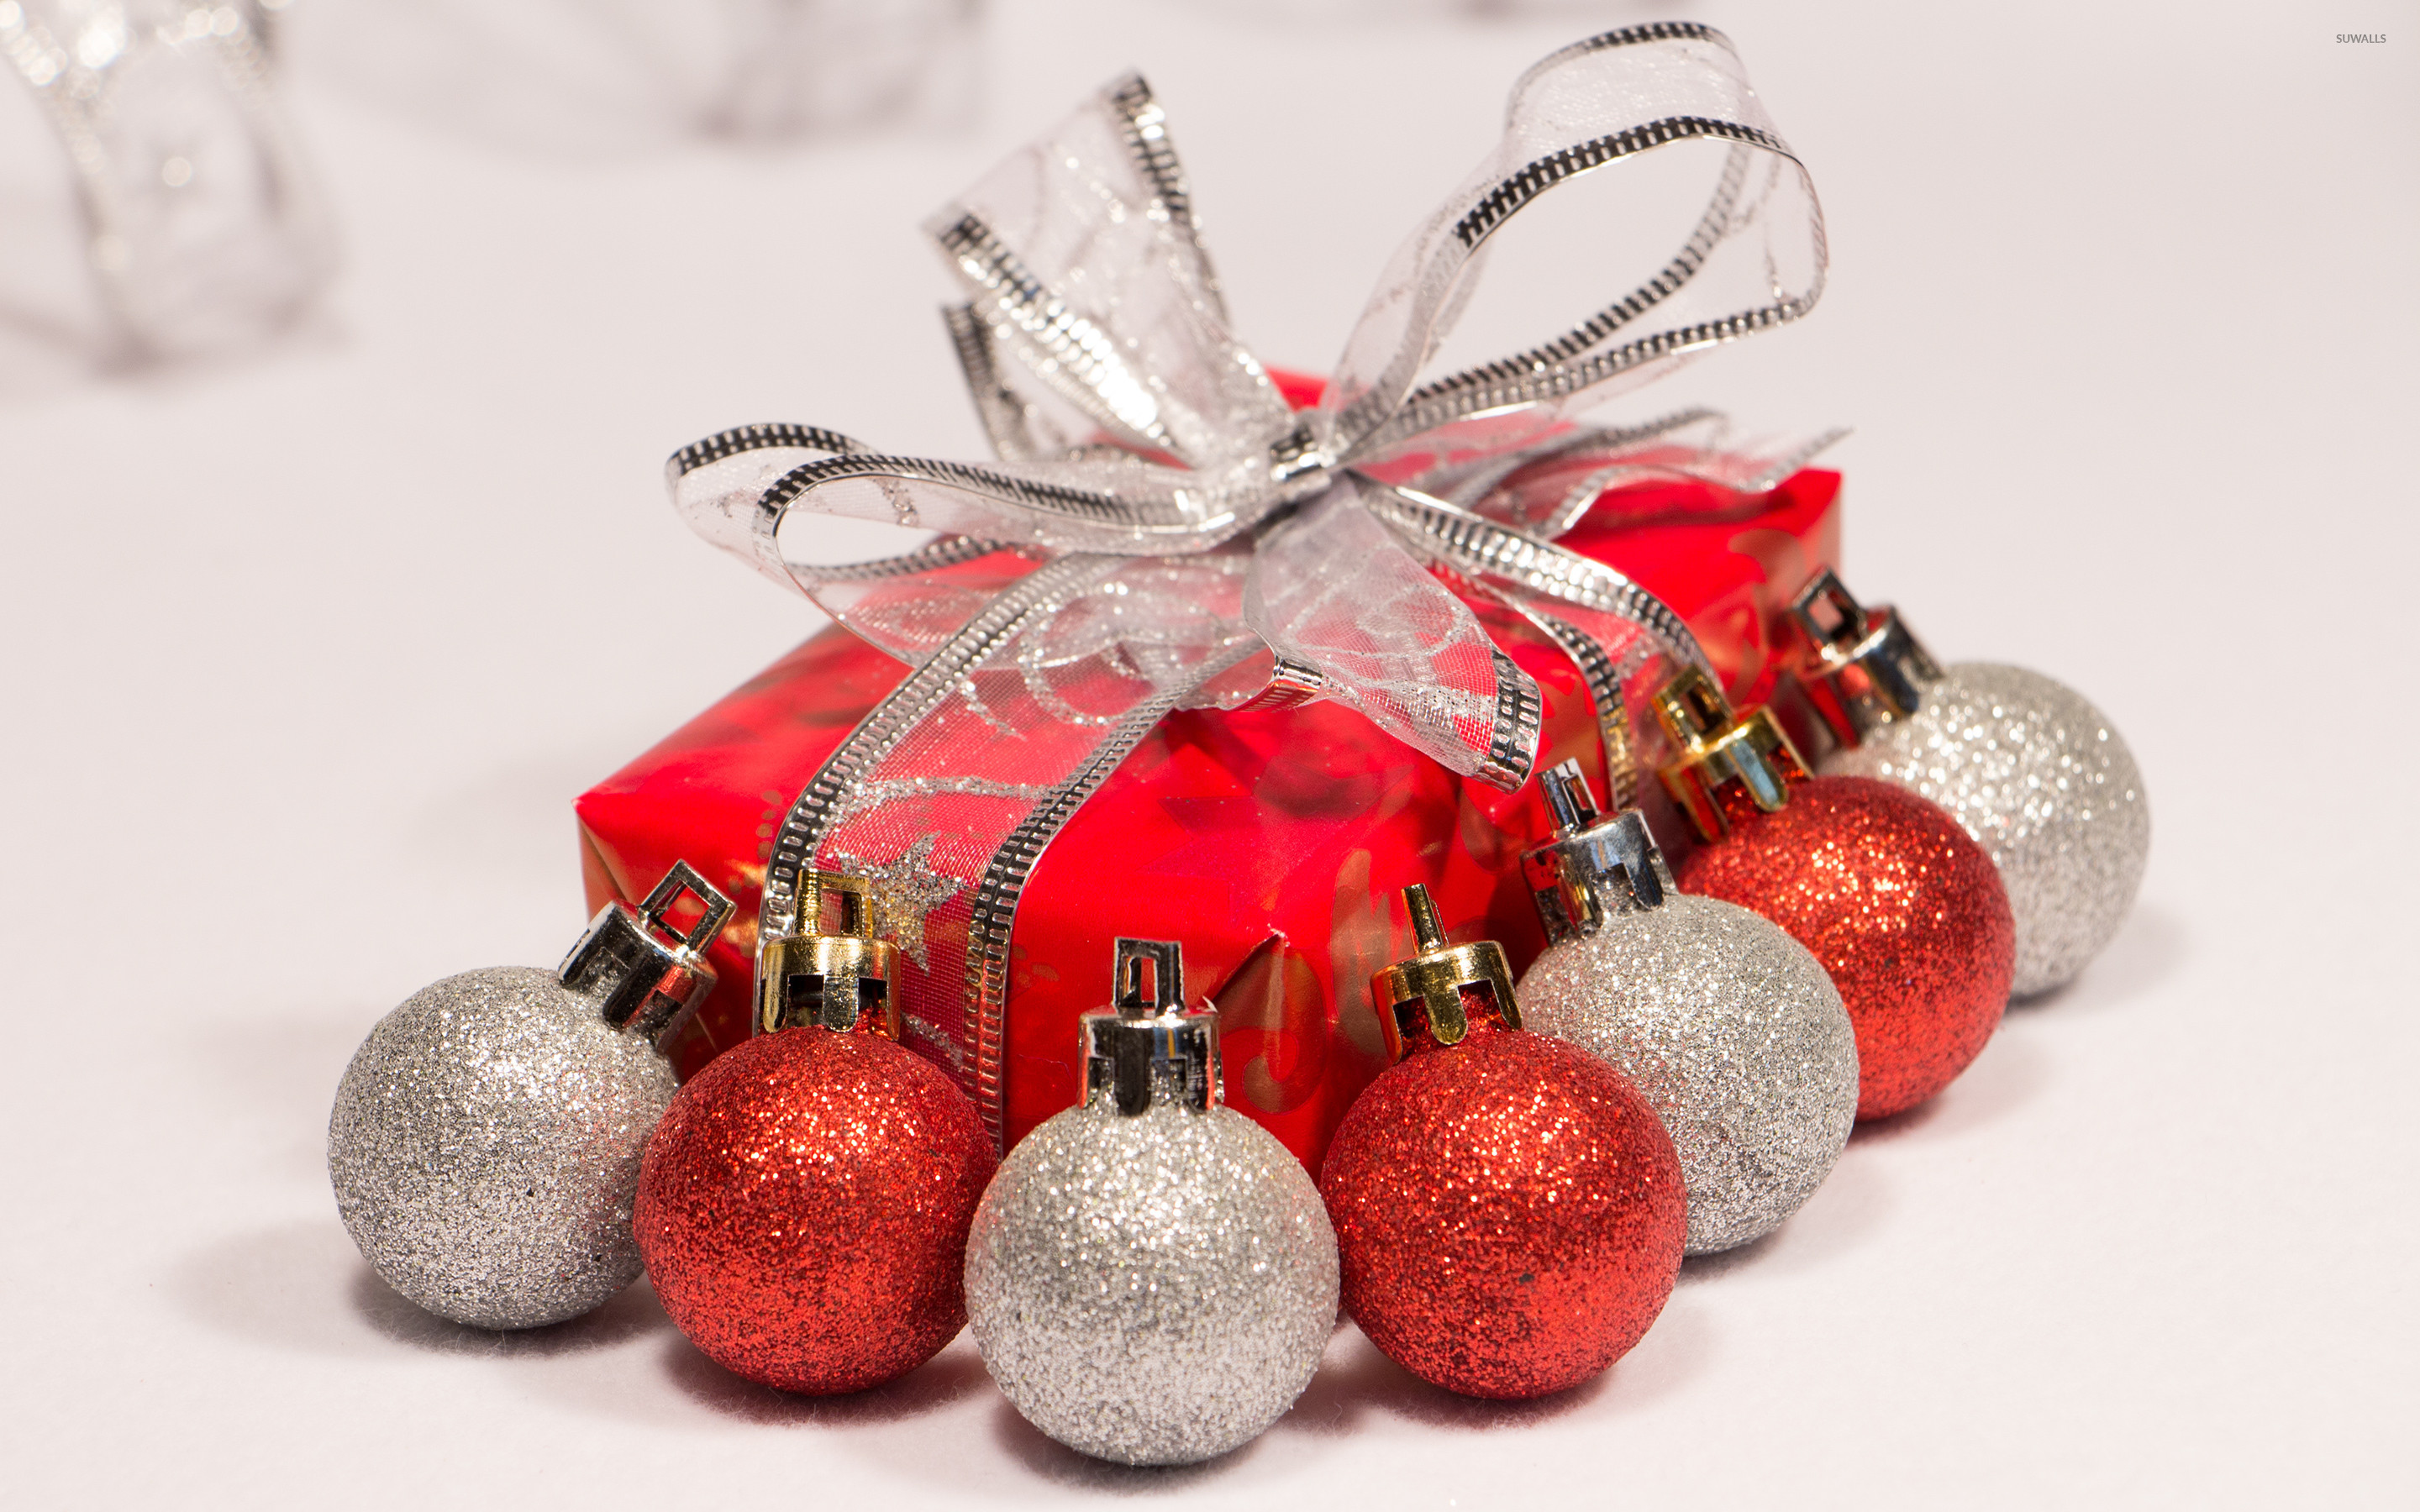 2880x1800 Red and silver baubles by the Christmas present wallpaper